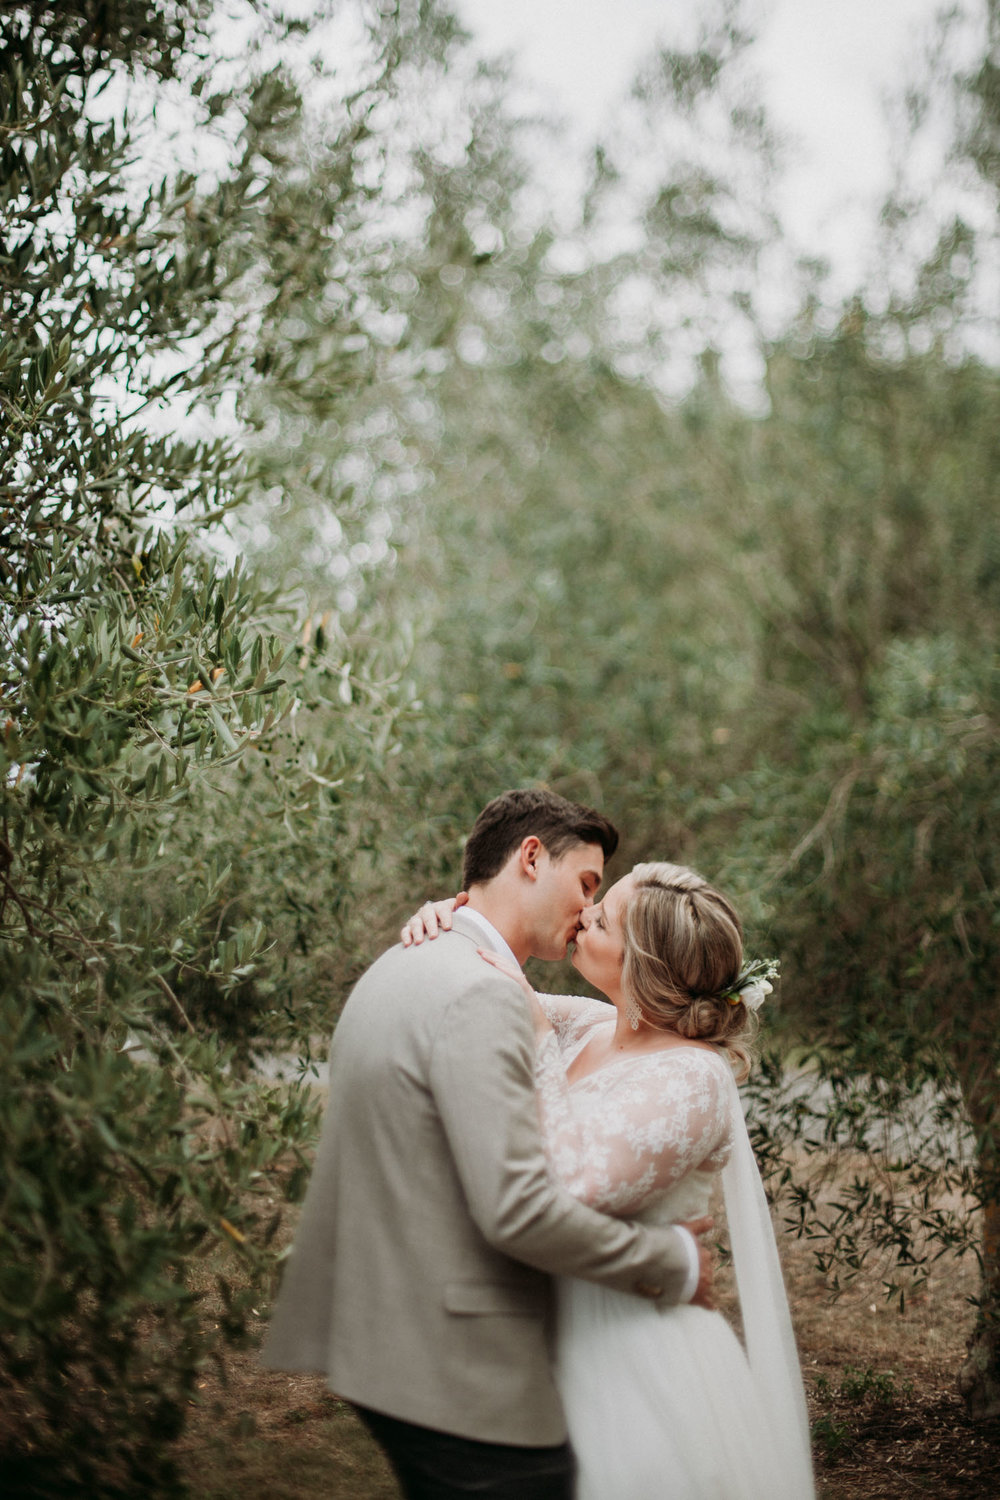 Kissing in the olive grove